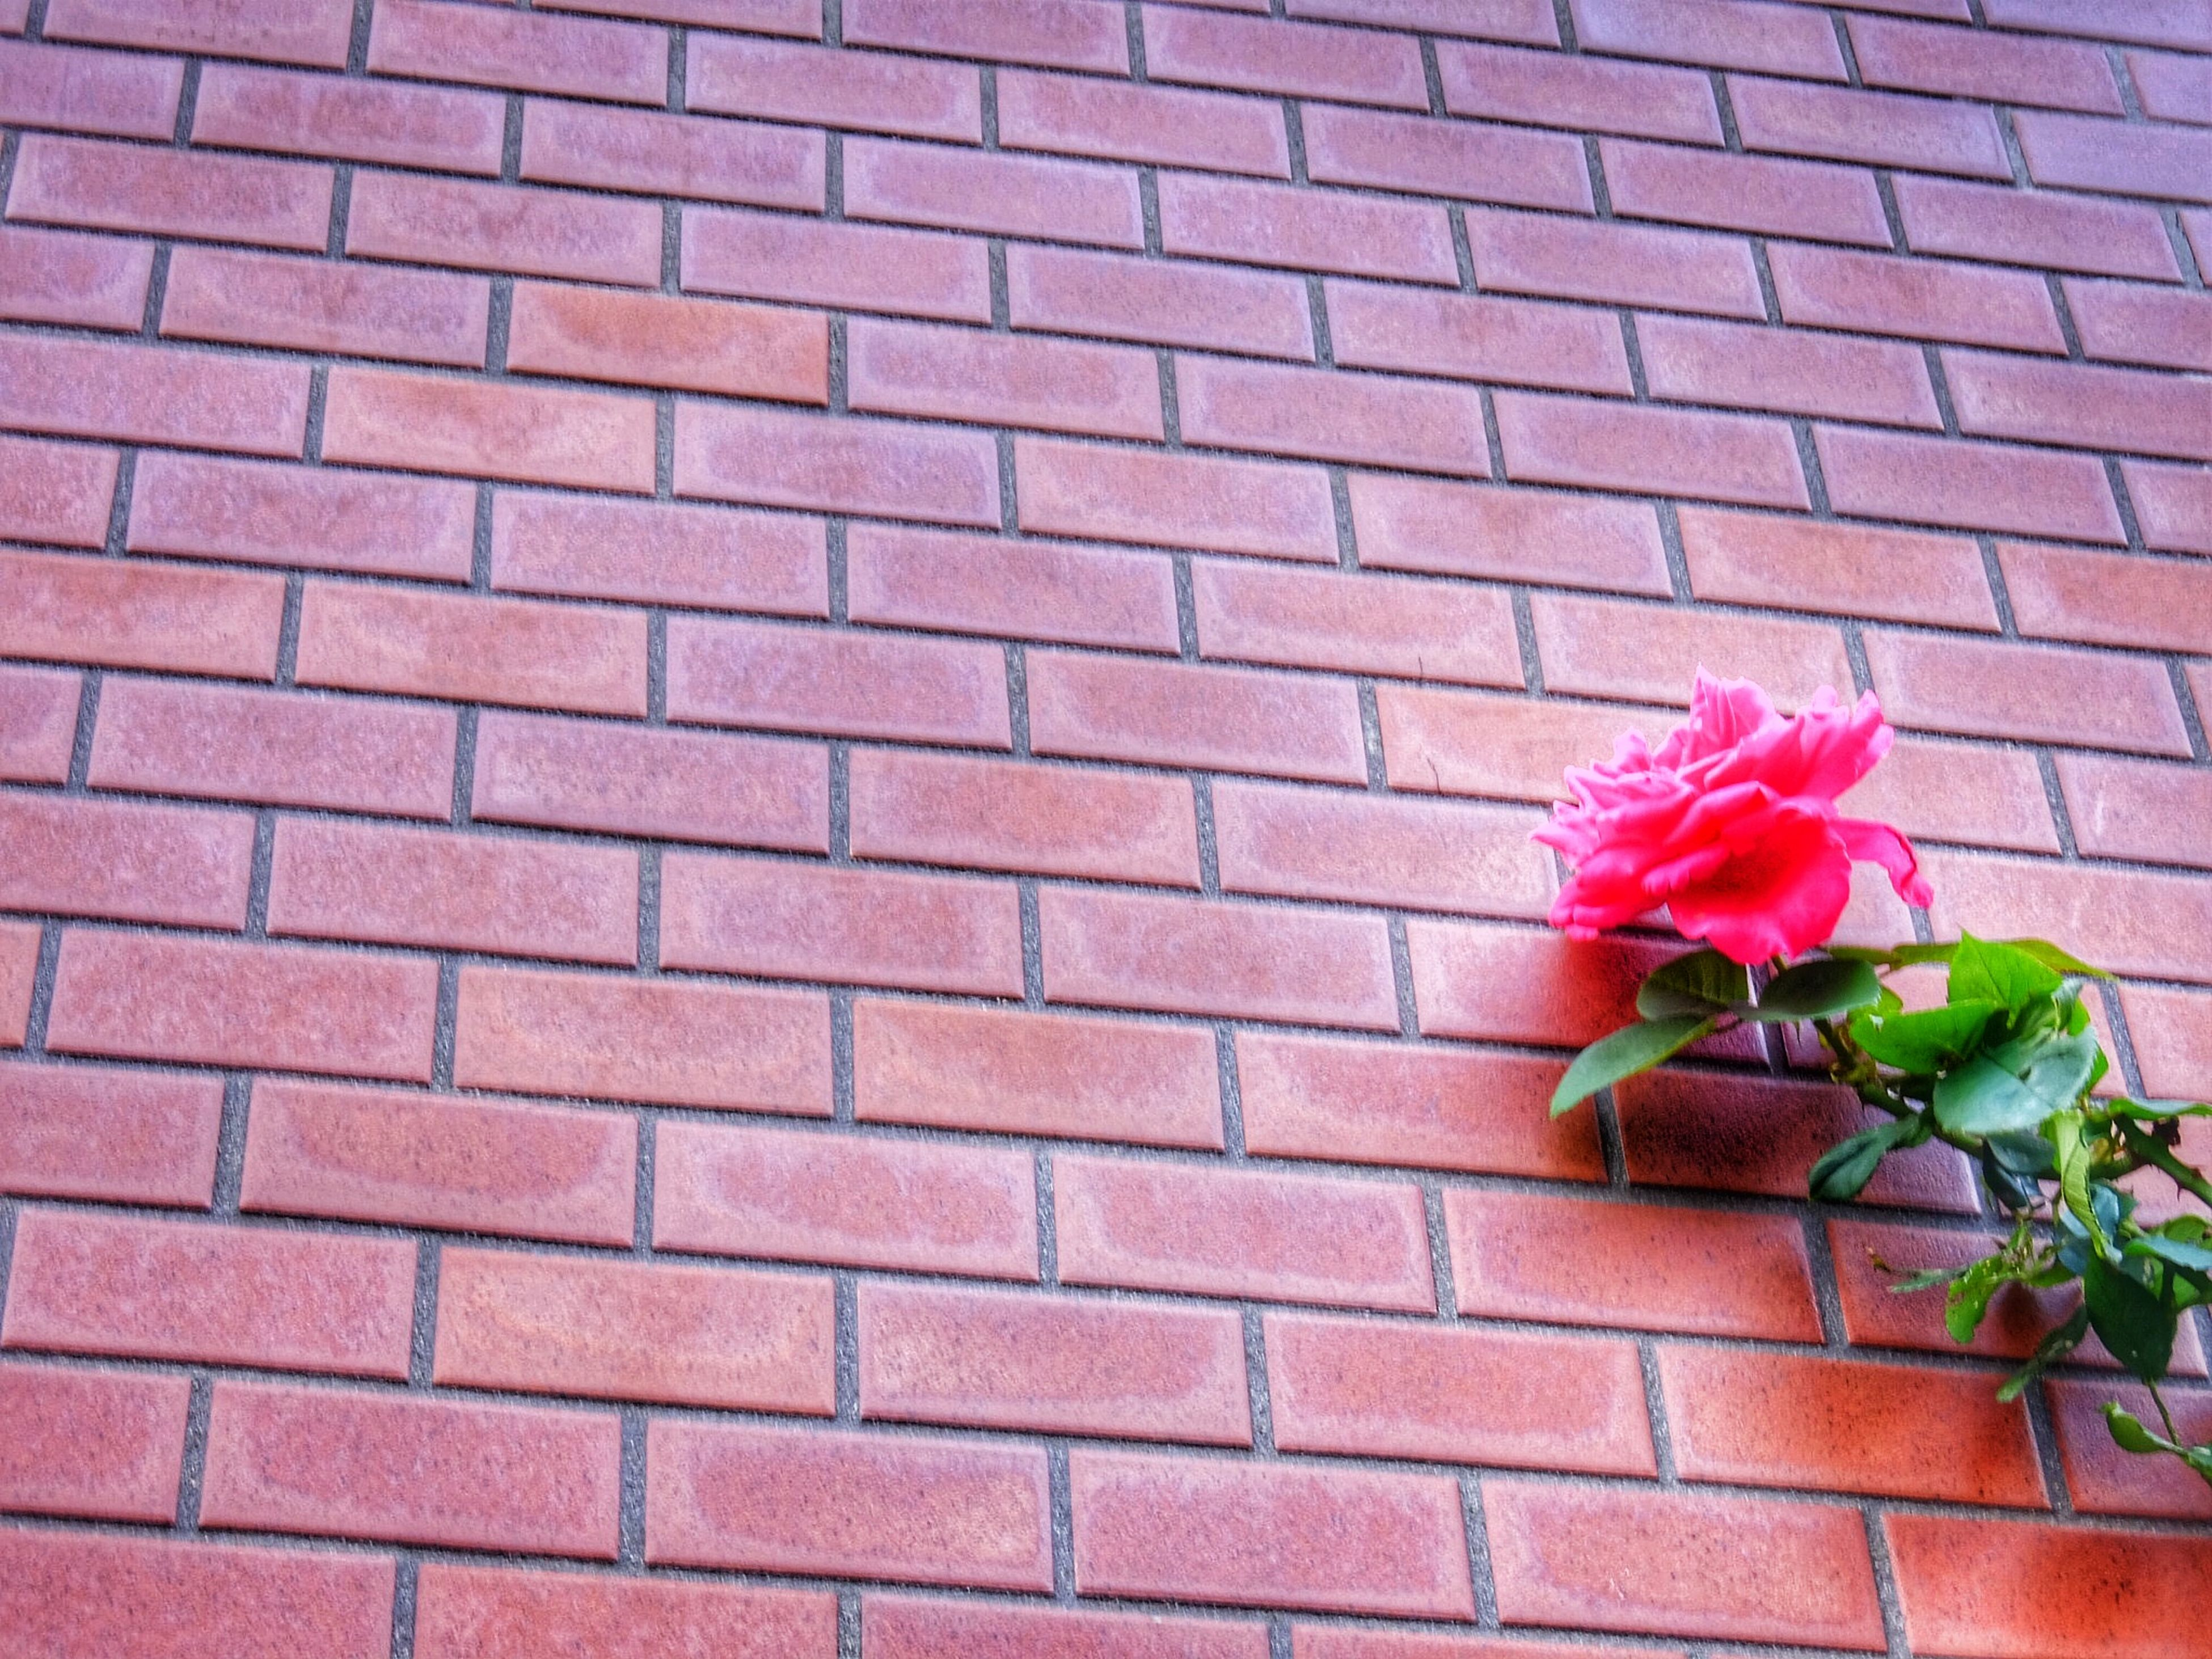 flower, freshness, fragility, petal, growth, red, wall - building feature, plant, pink color, flower head, brick wall, beauty in nature, leaf, nature, blooming, close-up, built structure, architecture, rose - flower, day